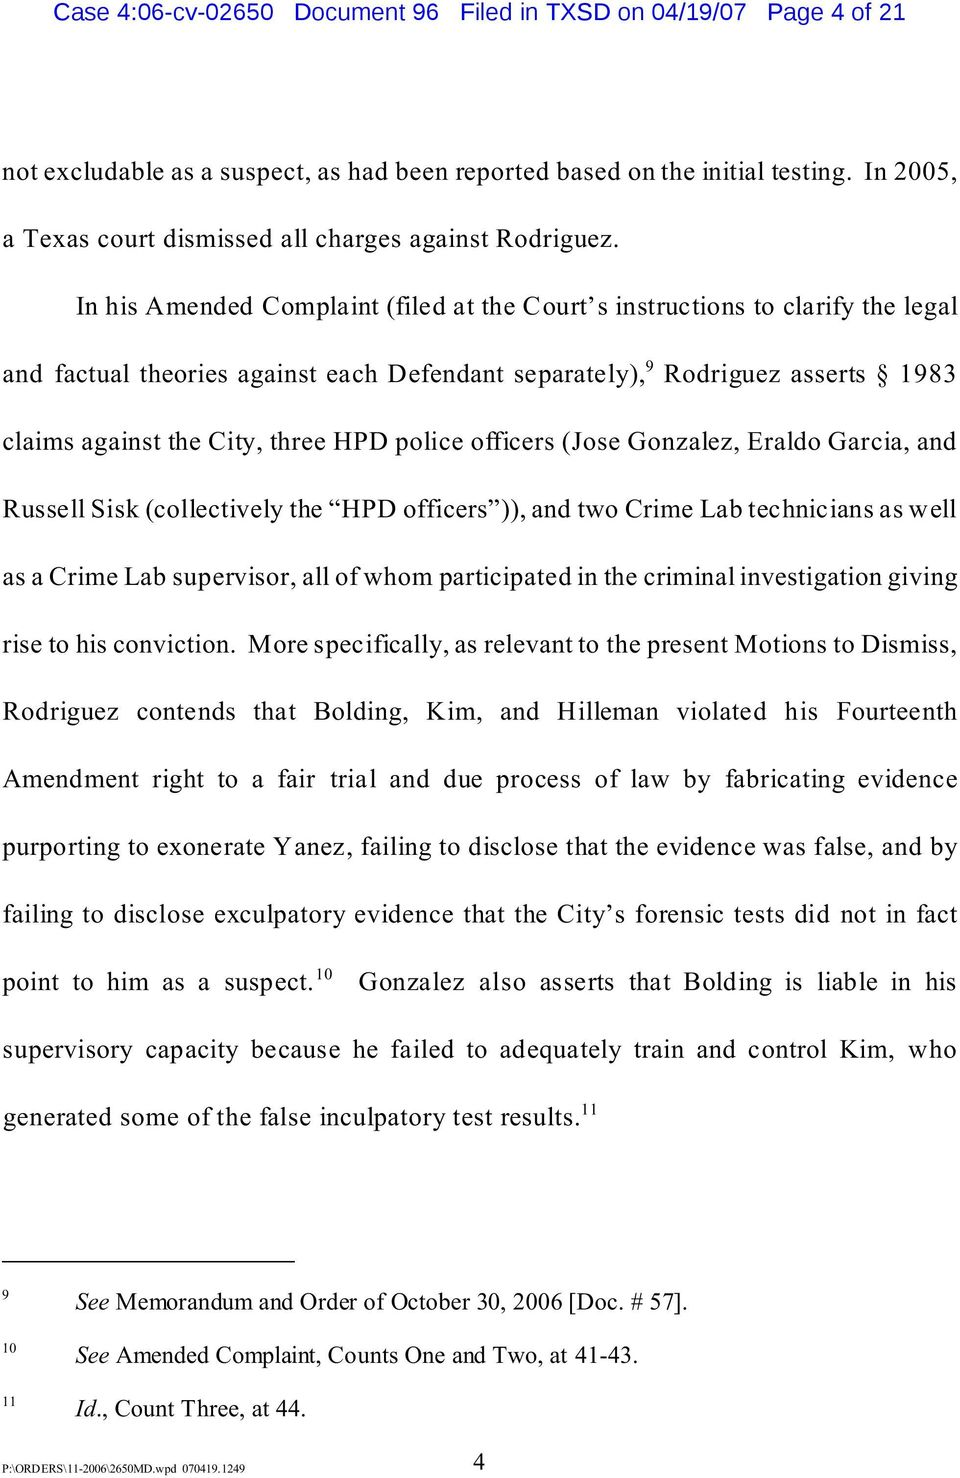 In his Amended Complaint (filed at the Court s instructions to clarify the legal and factual theories against each Defendant separately), 9 Rodriguez asserts 1983 claims against the City, three HPD